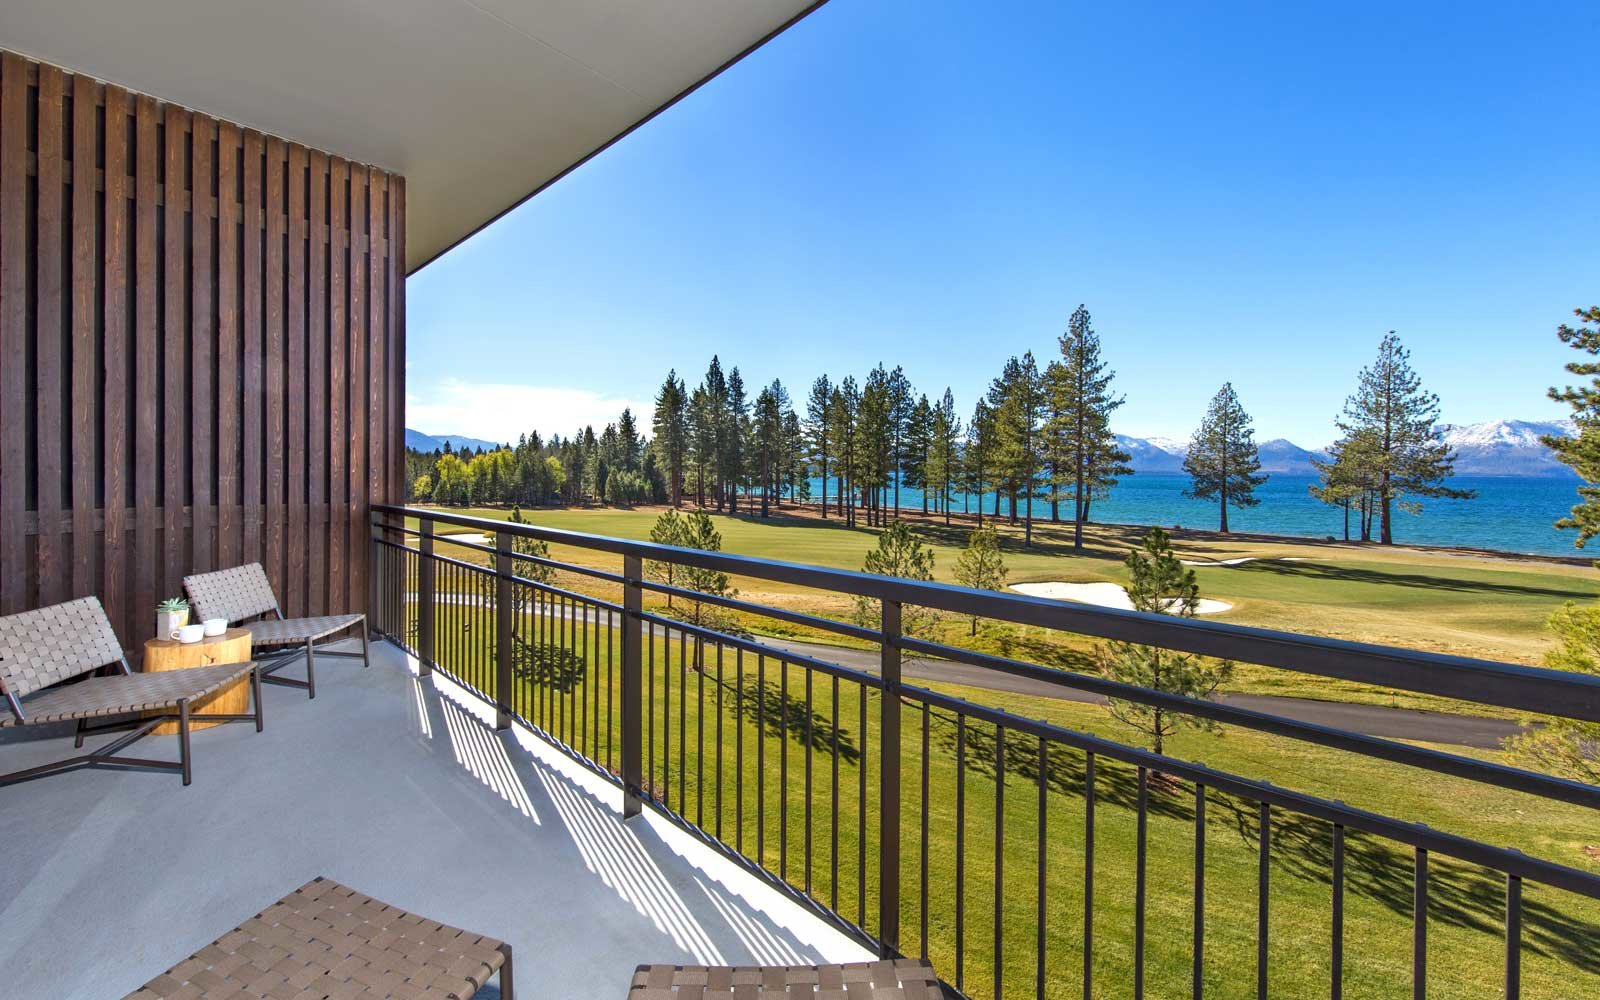 View from a room at the Lodge at Edgewood Tahoe